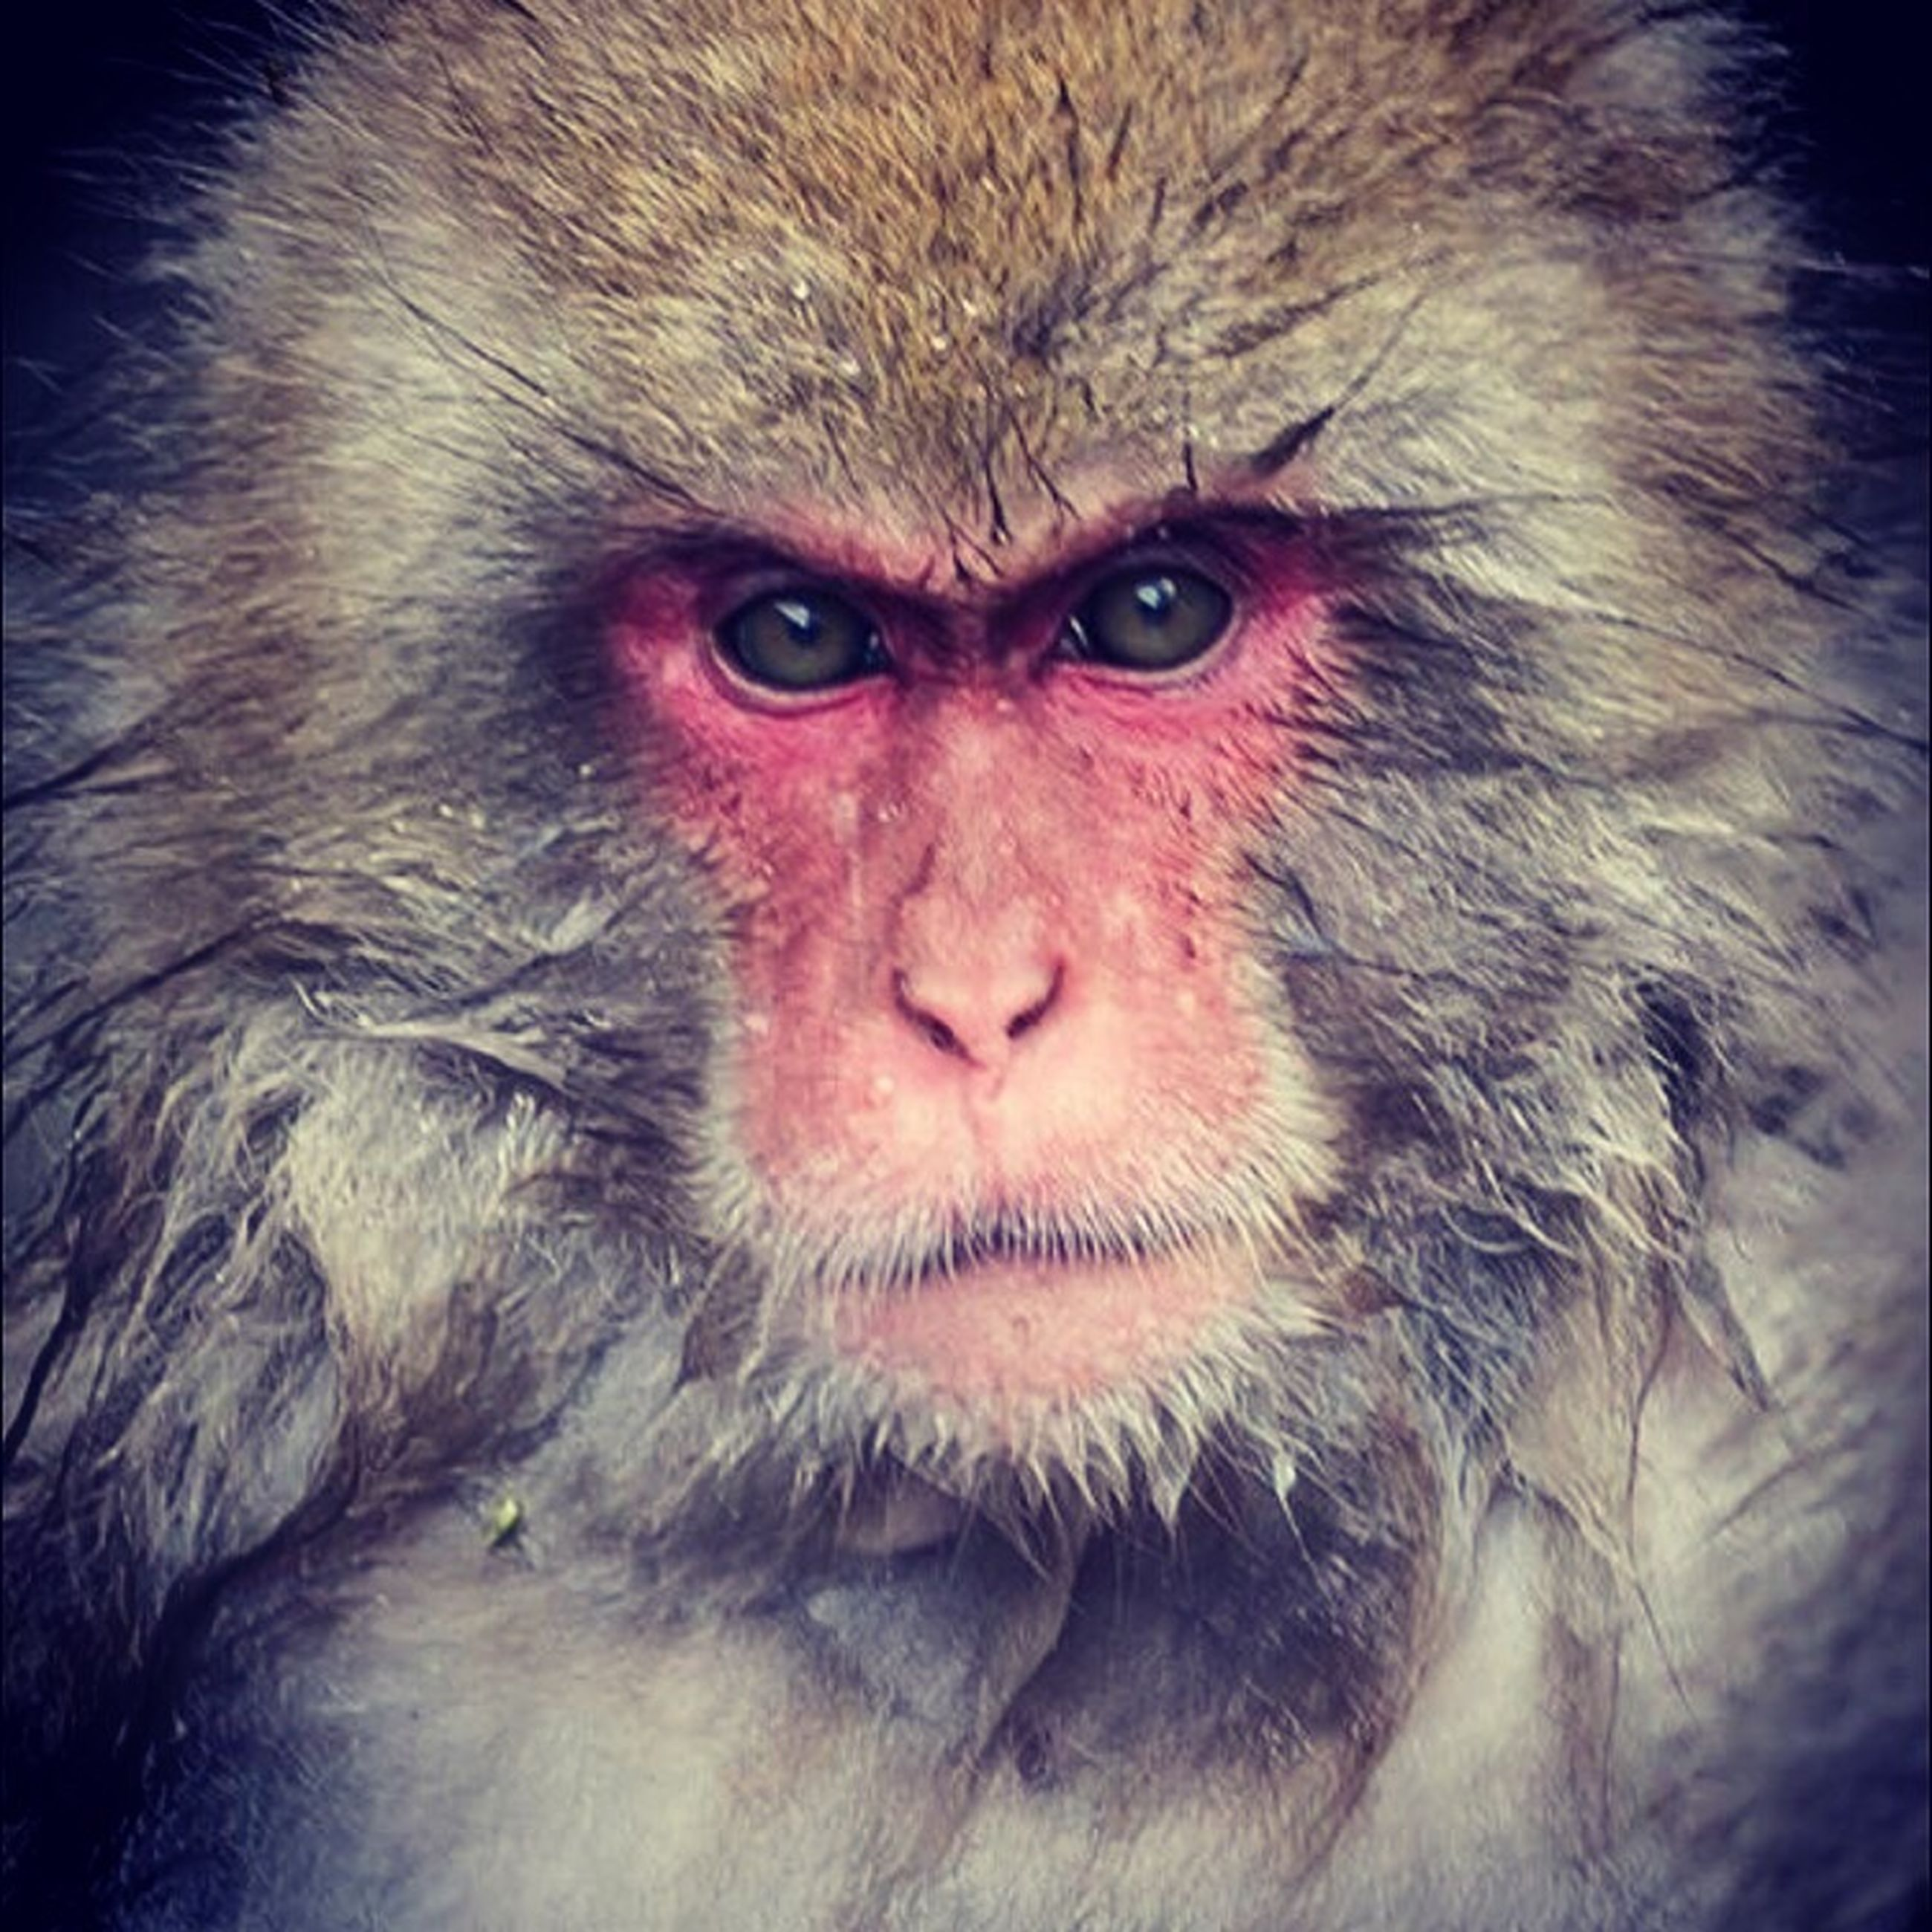 animal themes, one animal, portrait, wildlife, animal head, close-up, looking at camera, animal hair, animals in the wild, mammal, domestic animals, pets, animal body part, monkey, animal eye, front view, zoology, red, primate